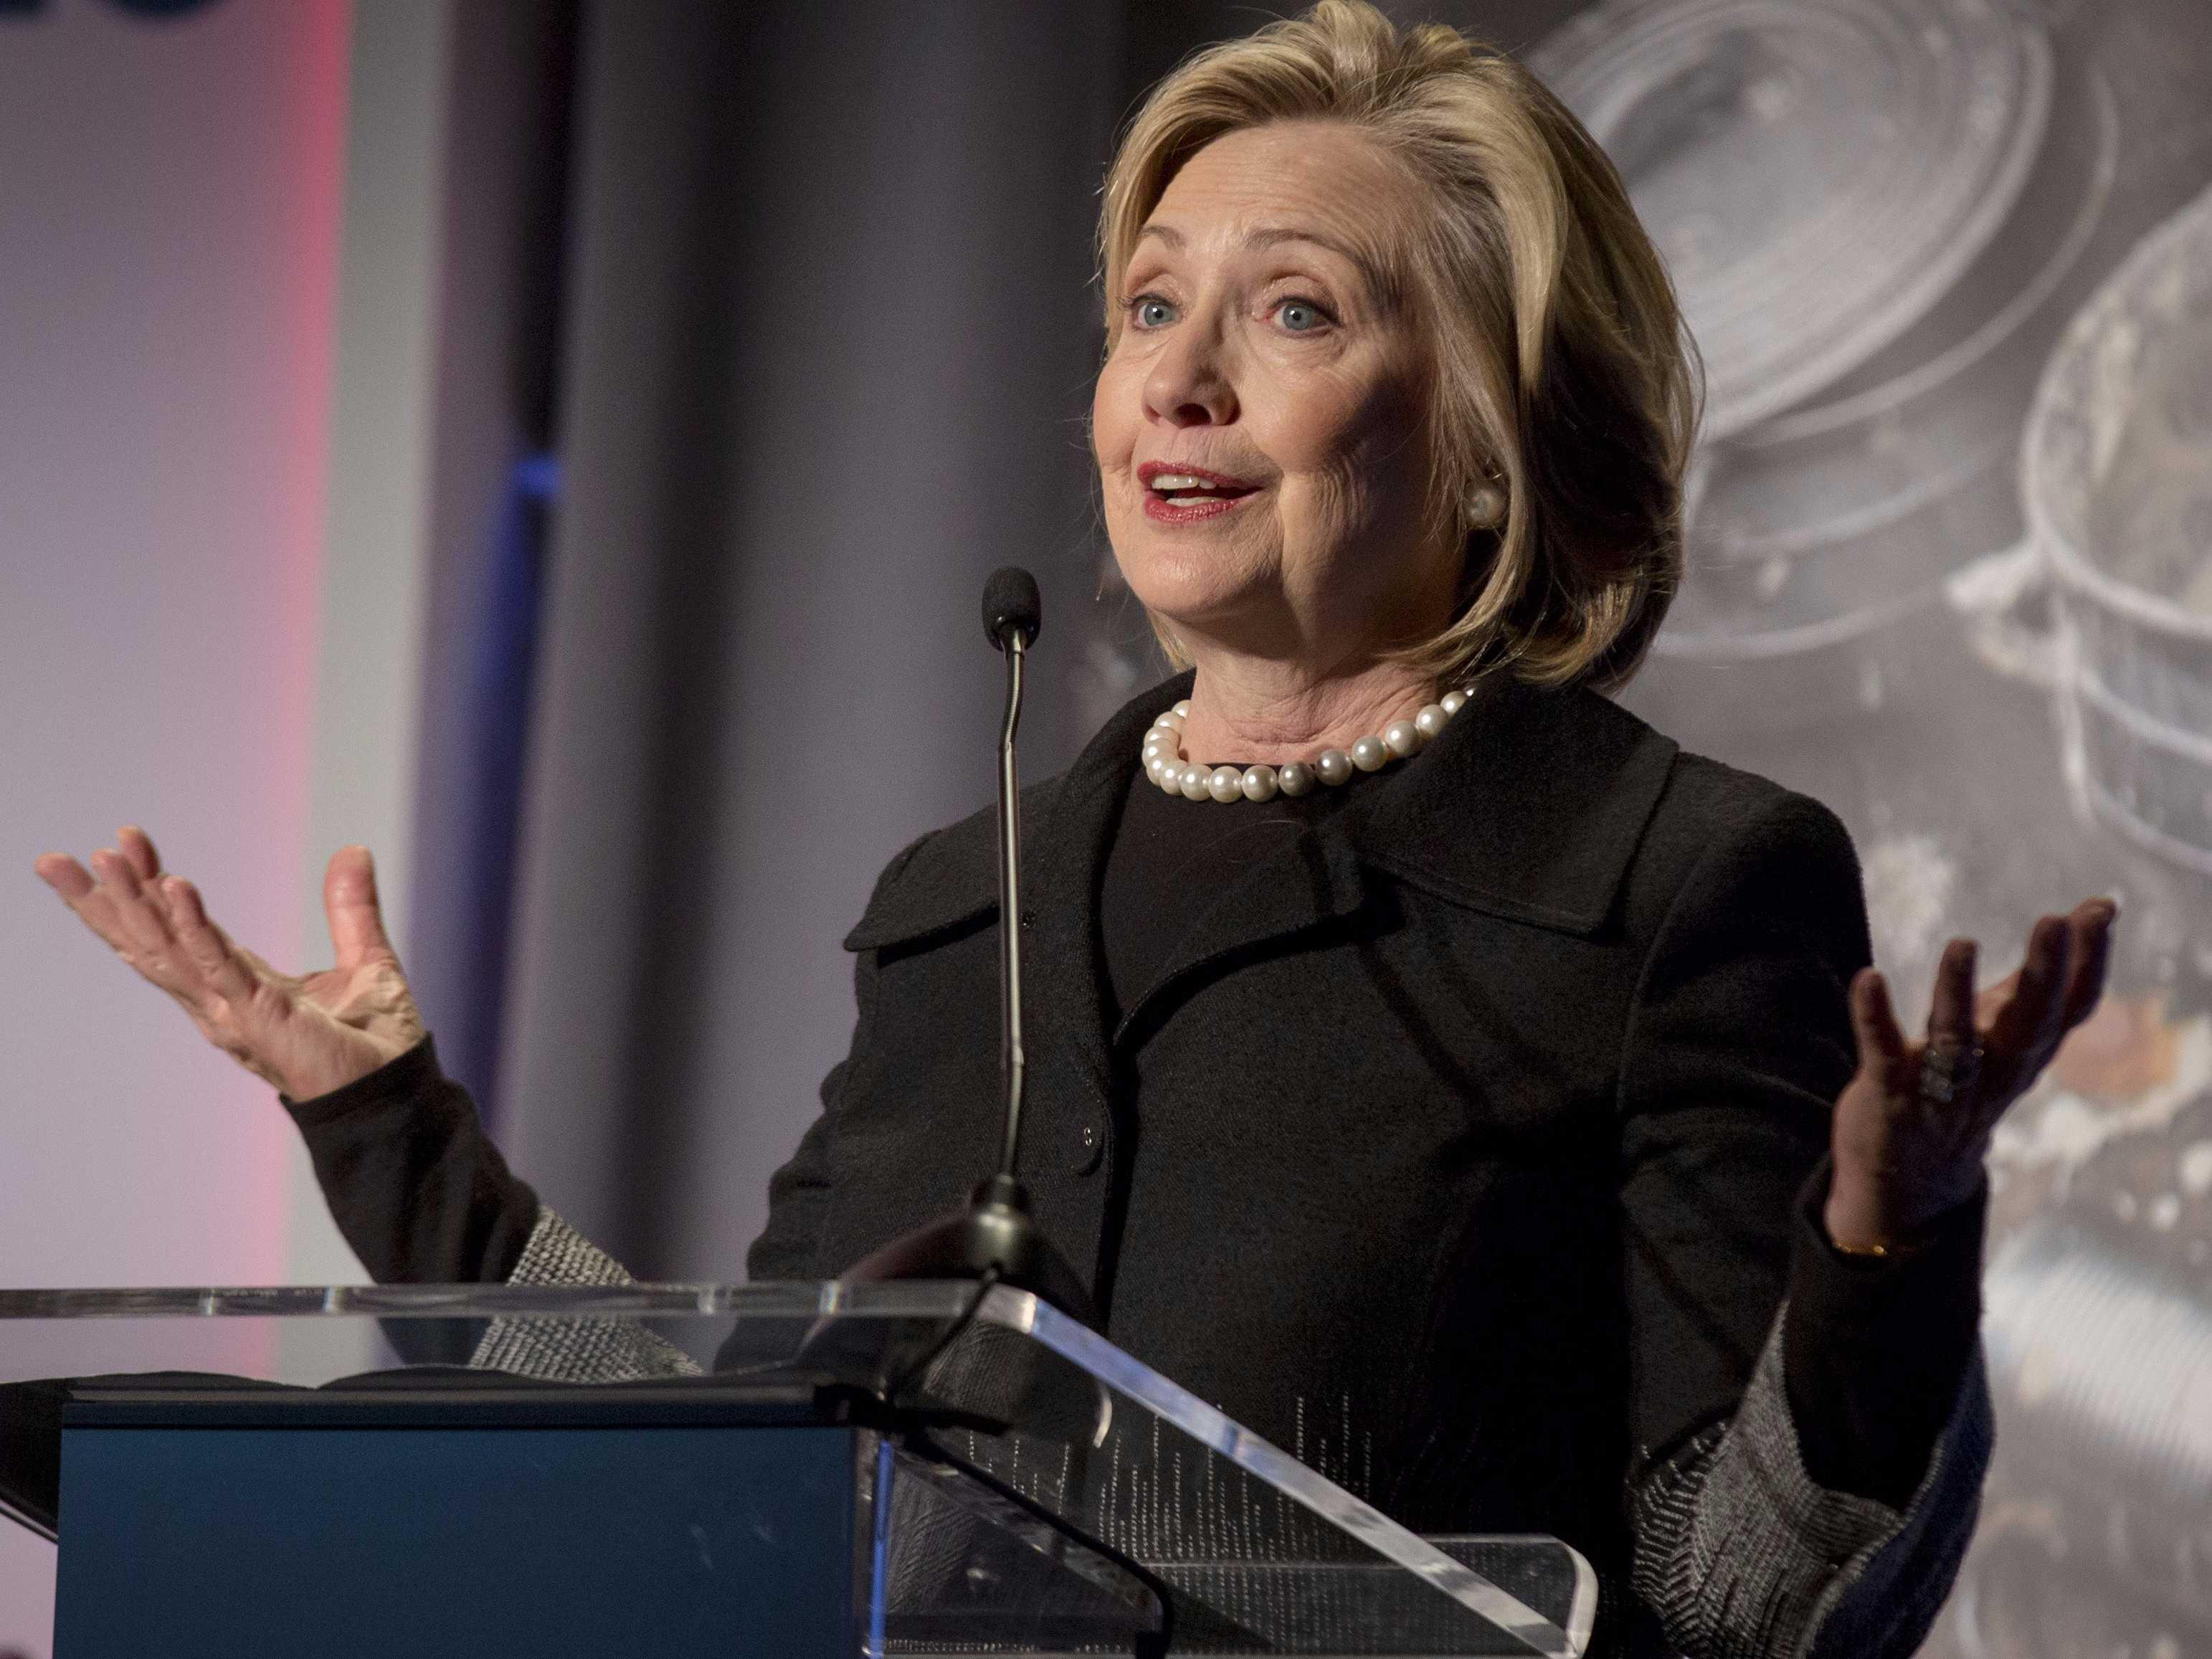 Here's how Hillary Clinton's Republican 2016 rivals reacted to her email scandal